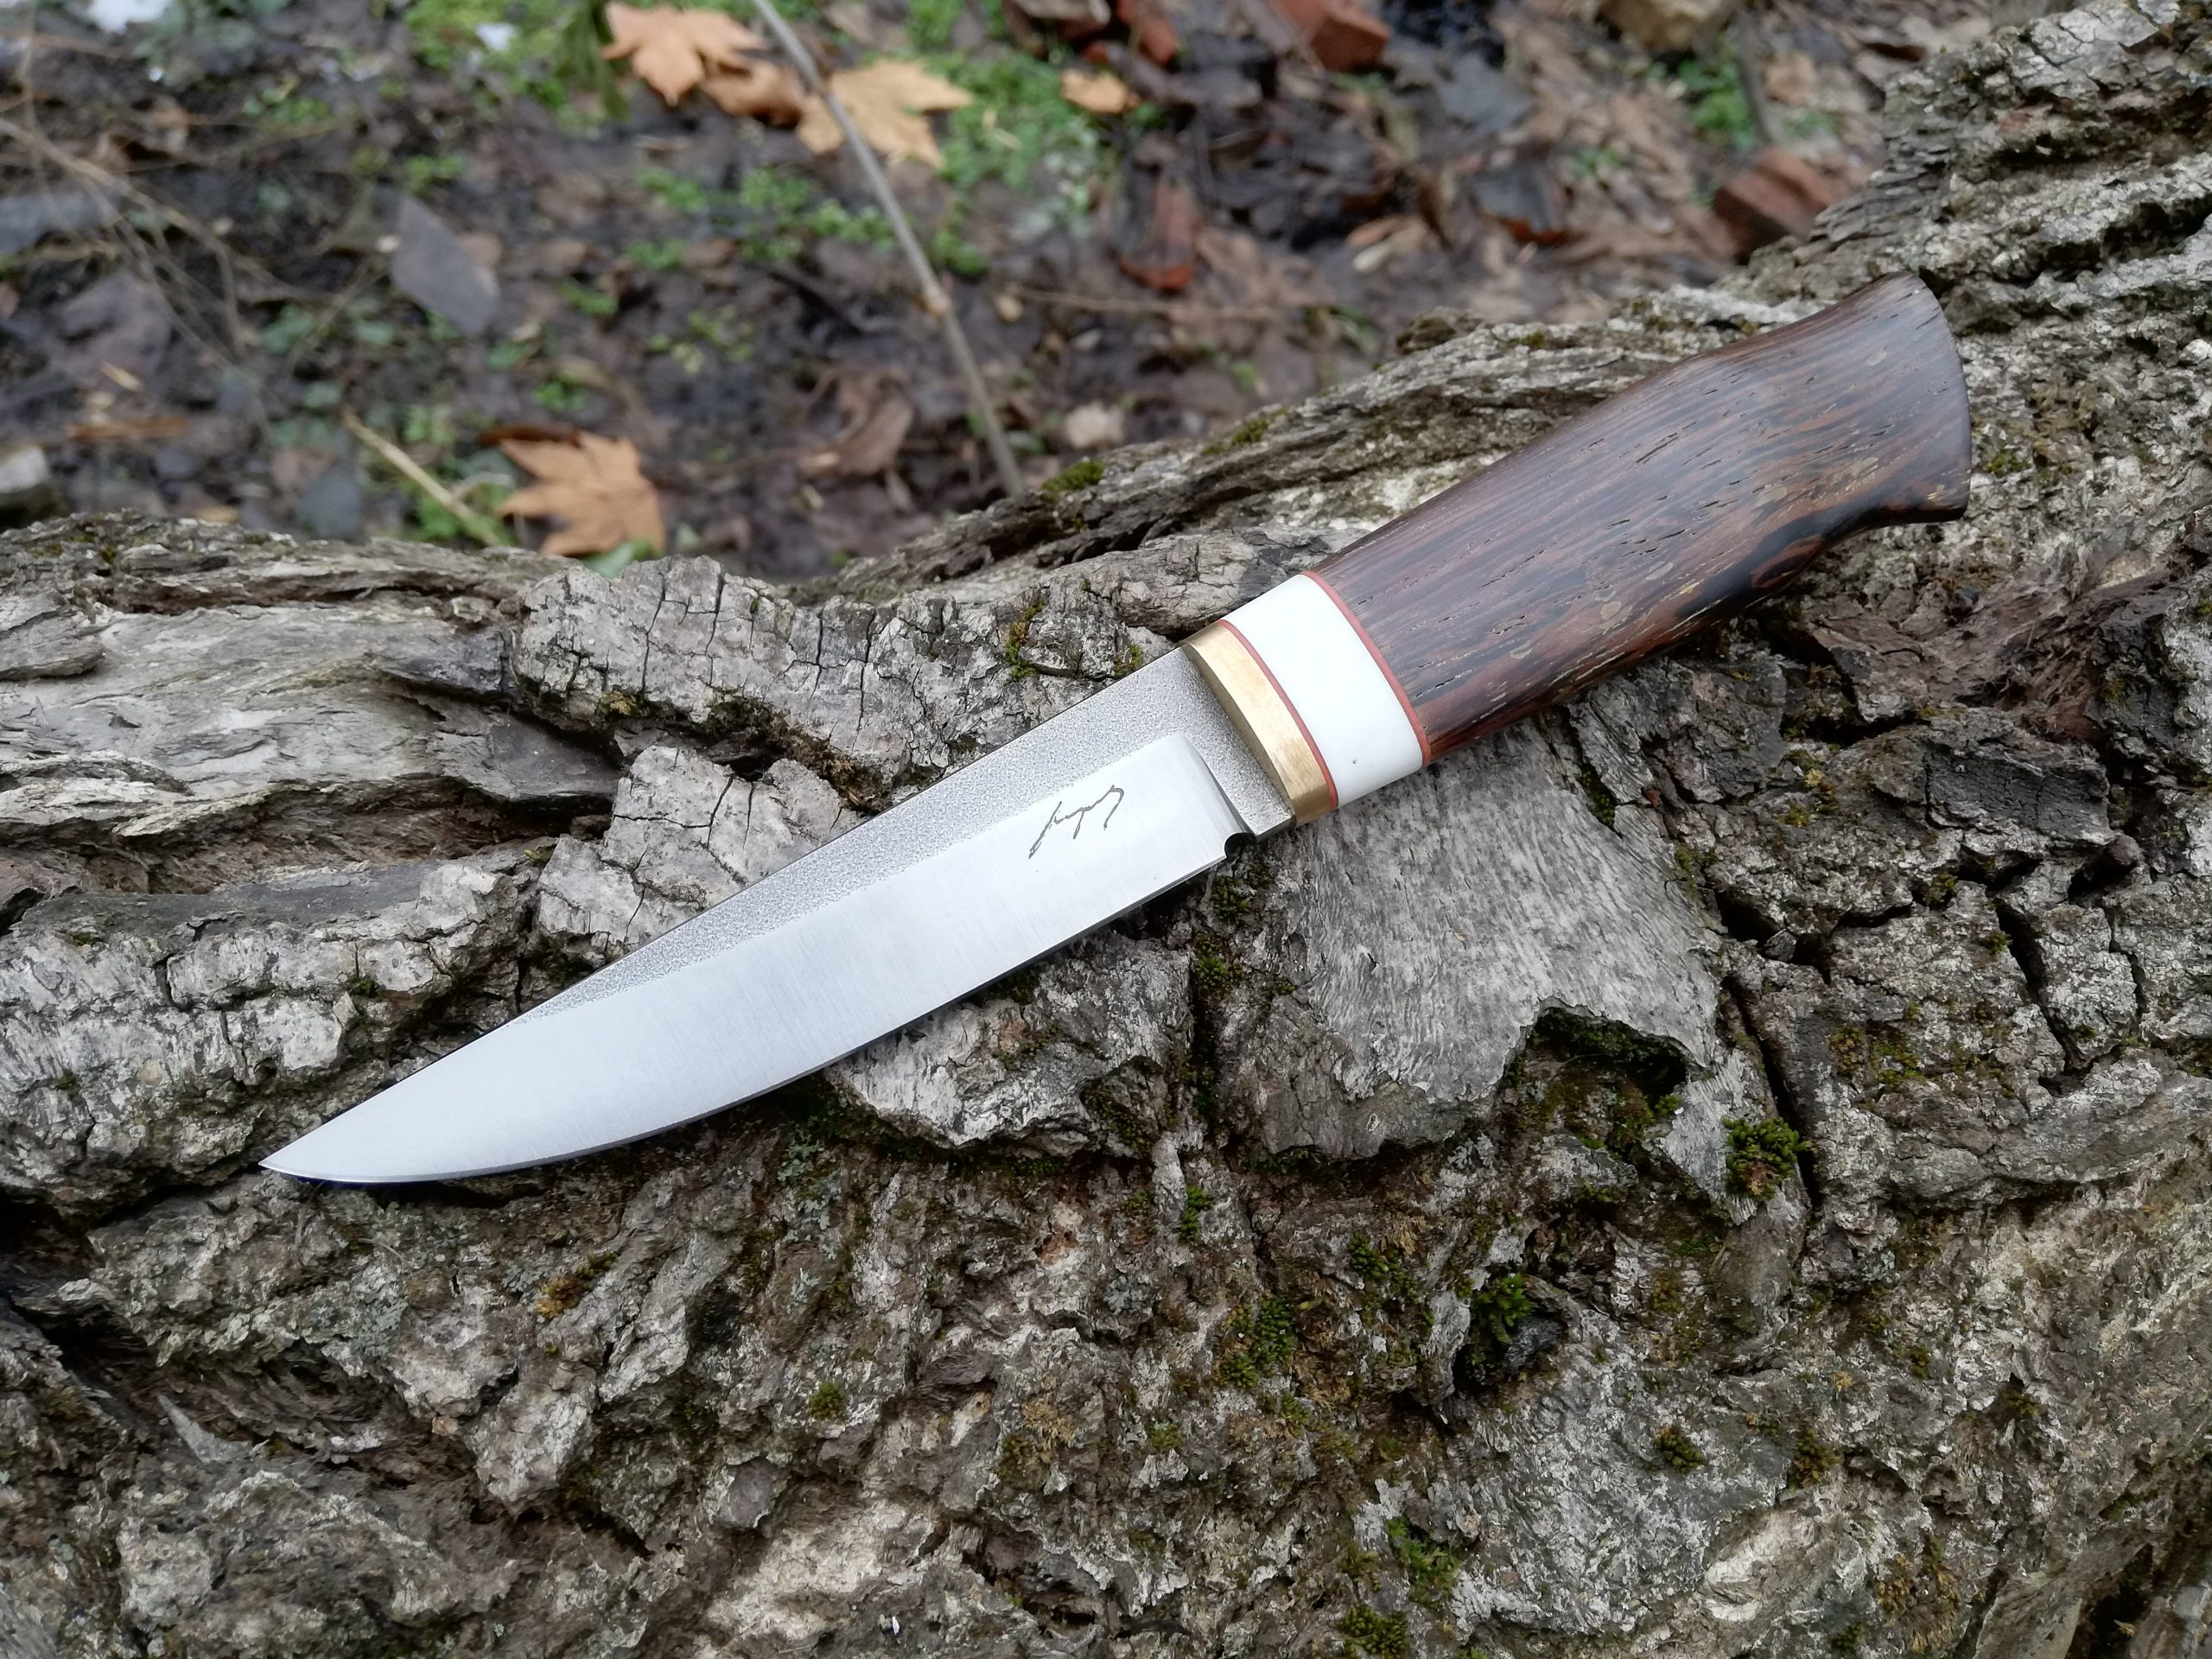 Classical hunting knife, made of 1.2379 steel, venge handle.